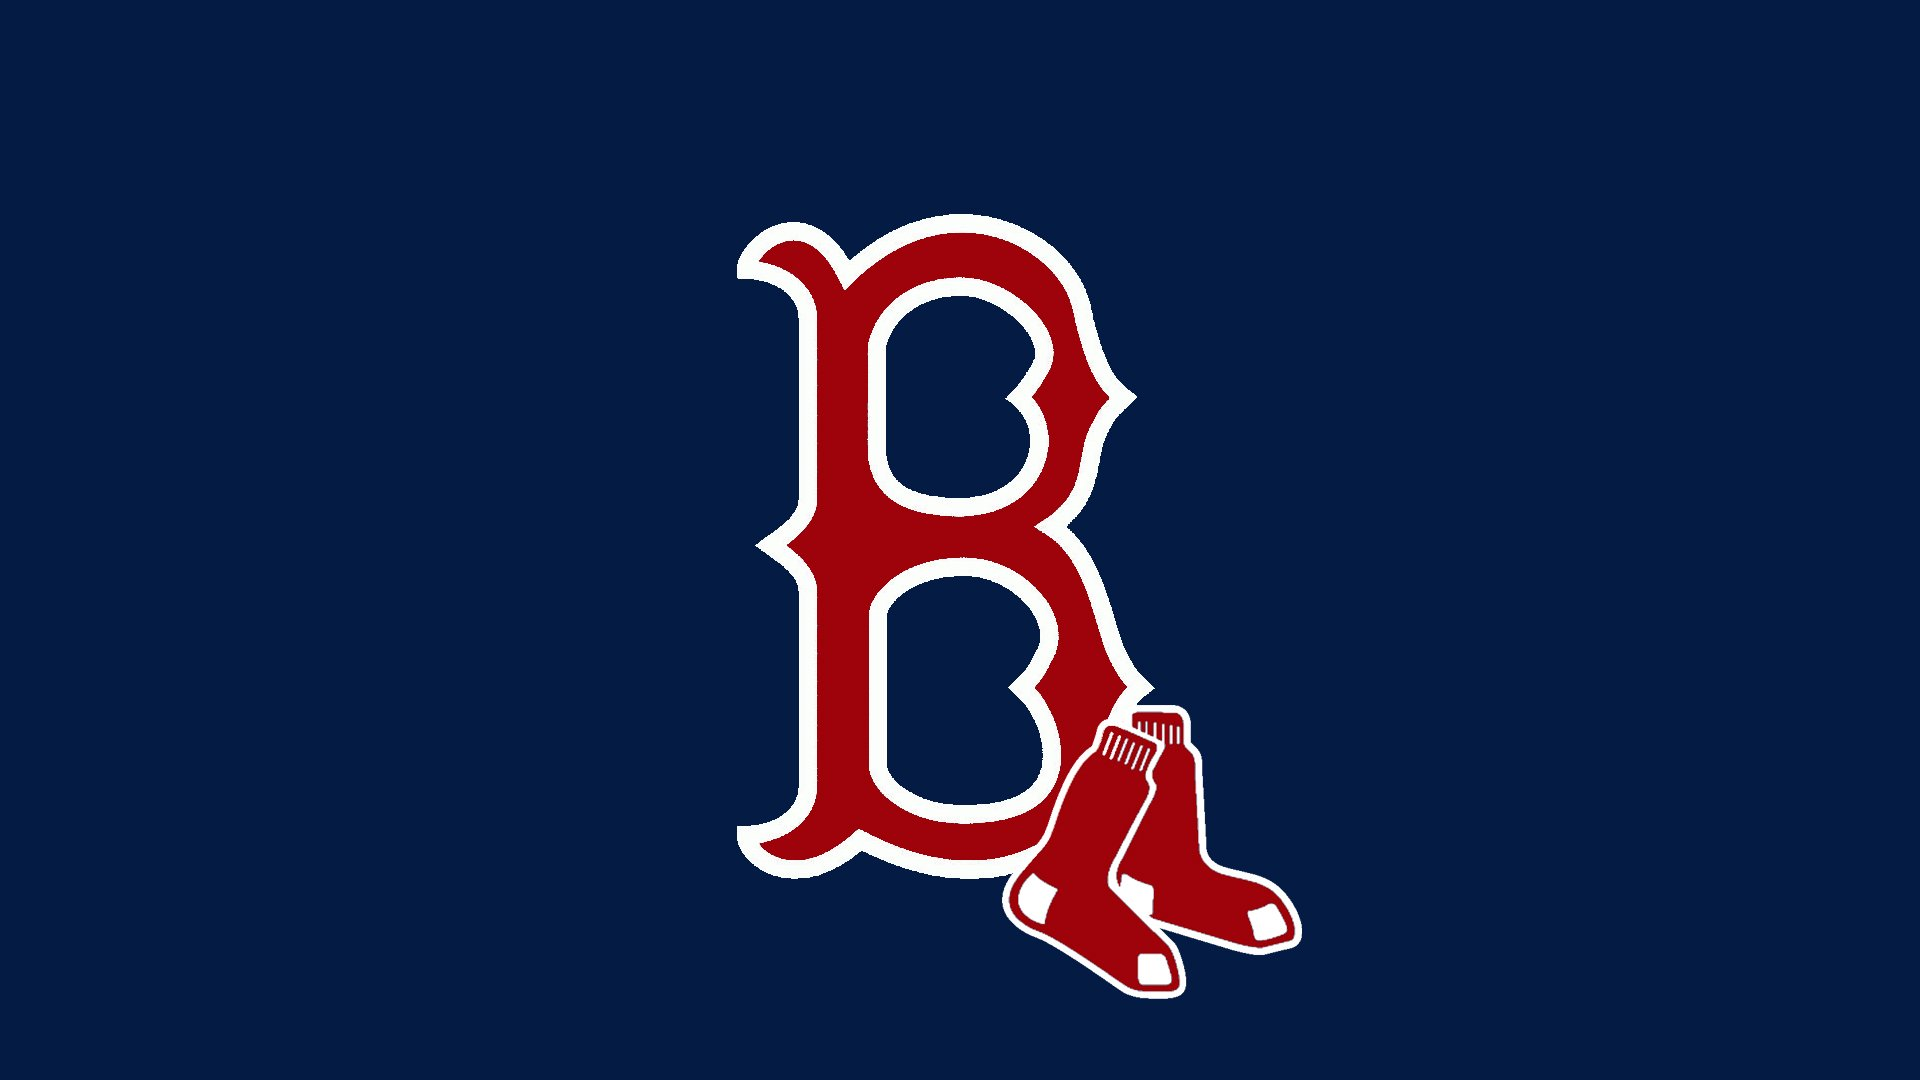 Red Sox Logo Desktop Wallpaper Images amp Pictures   Becuo 1920x1080